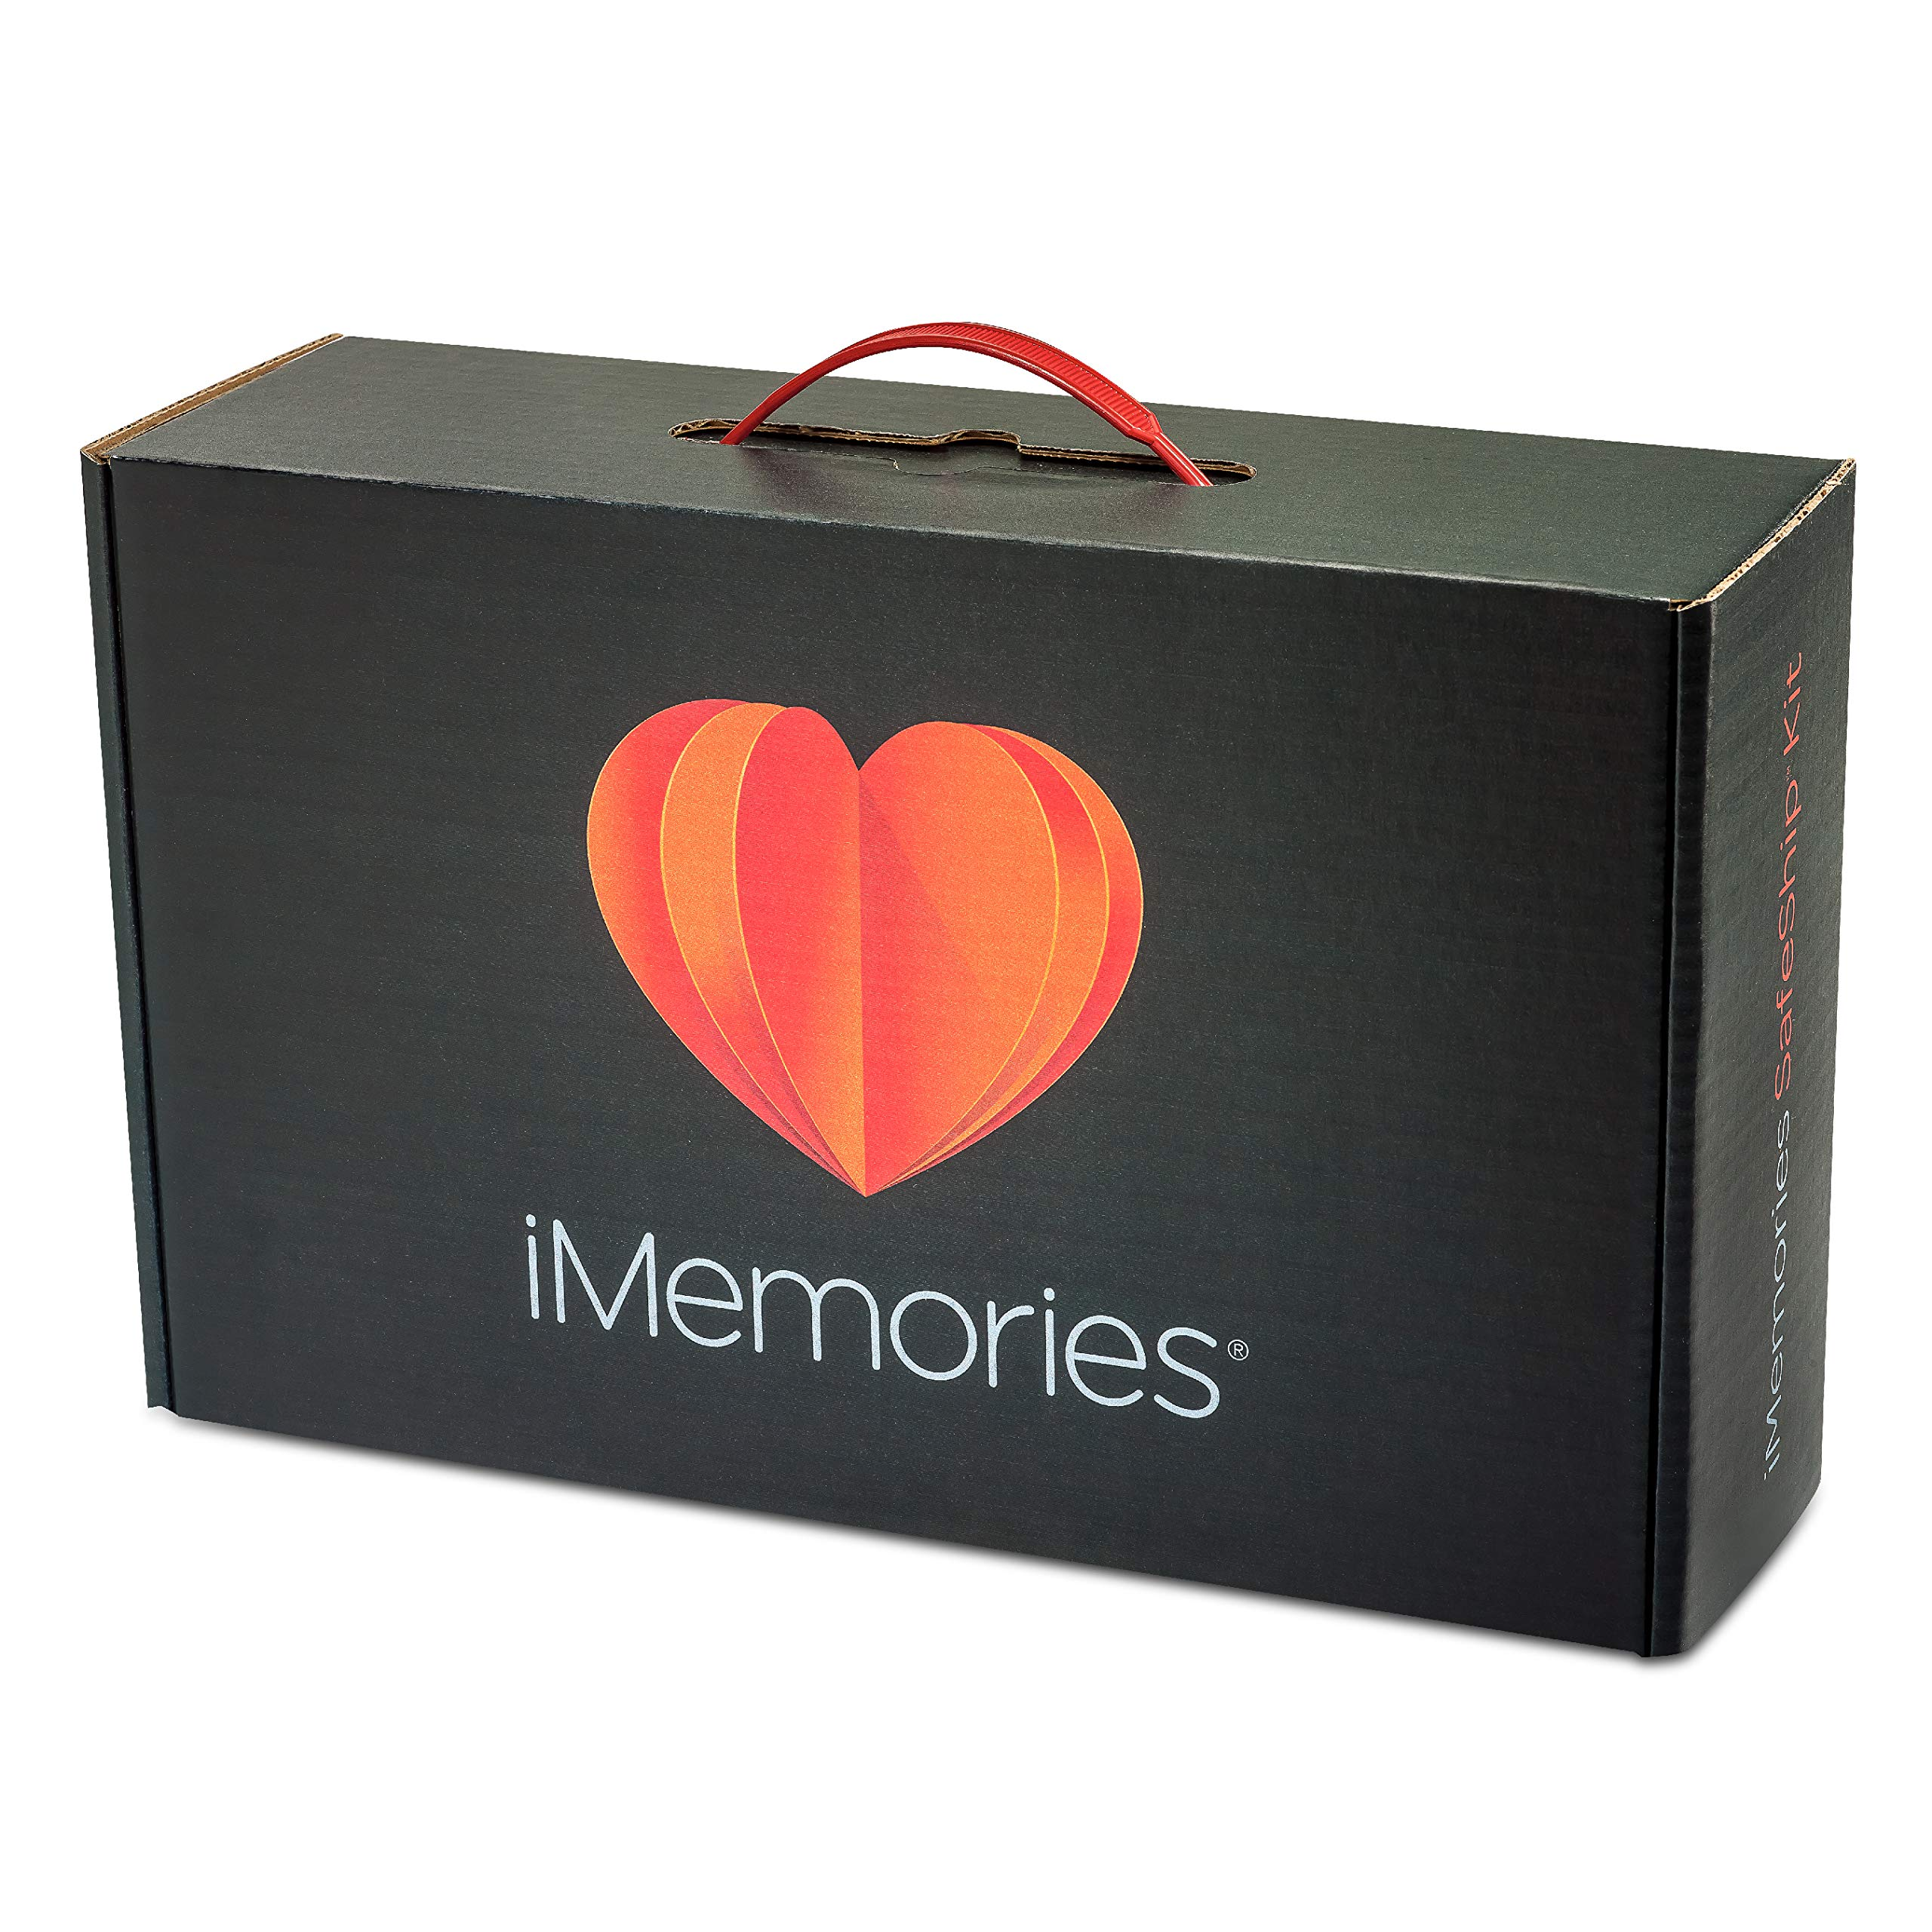 iMemories SafeShip Kit with $120 Conversion Reimbursement, Digitally Convert Your Family's Home Movies and Photos